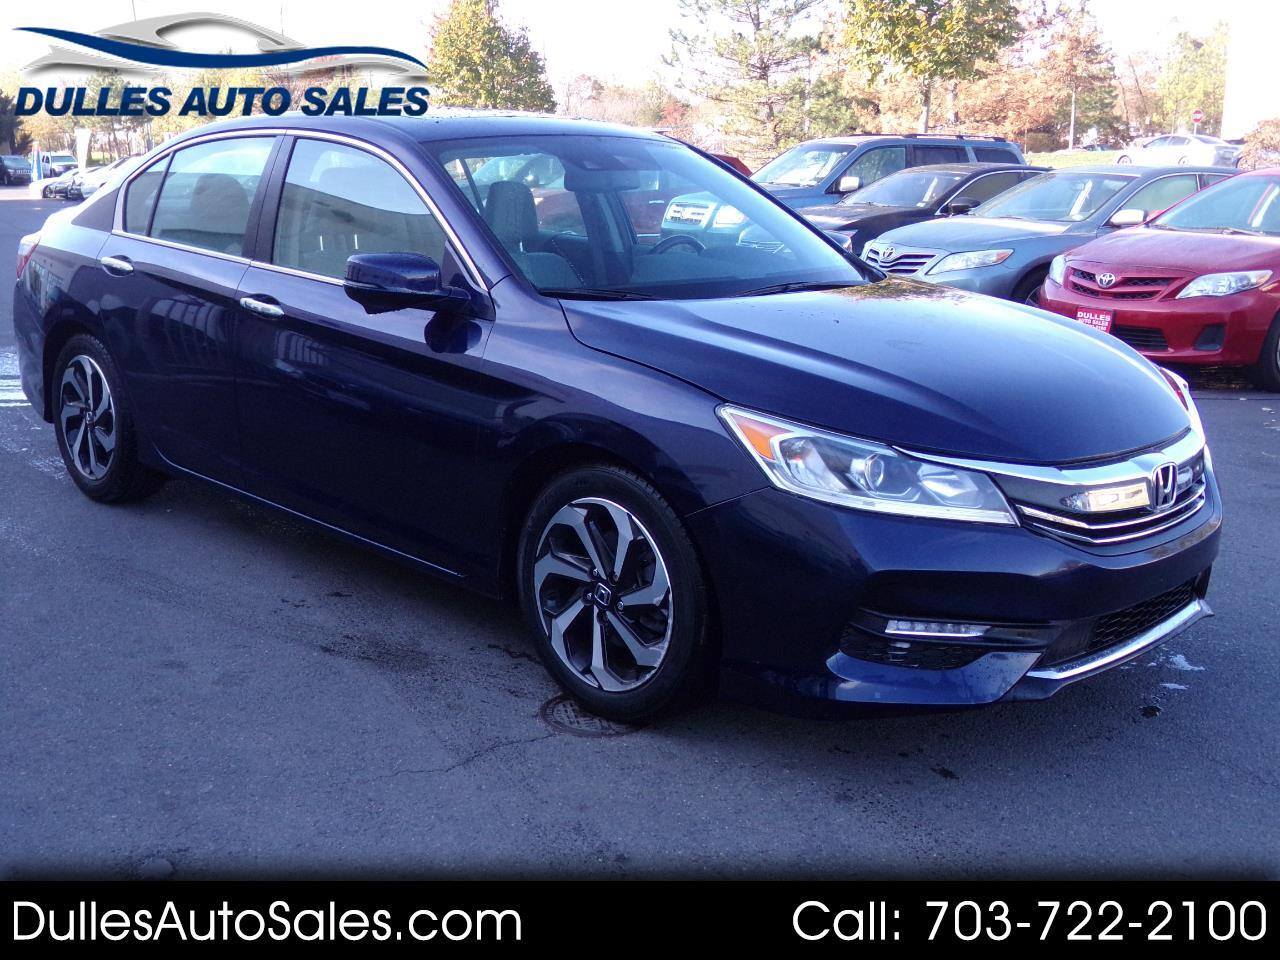 2016 Honda Accord EX-L Sedan with Navigation System and XM Radio